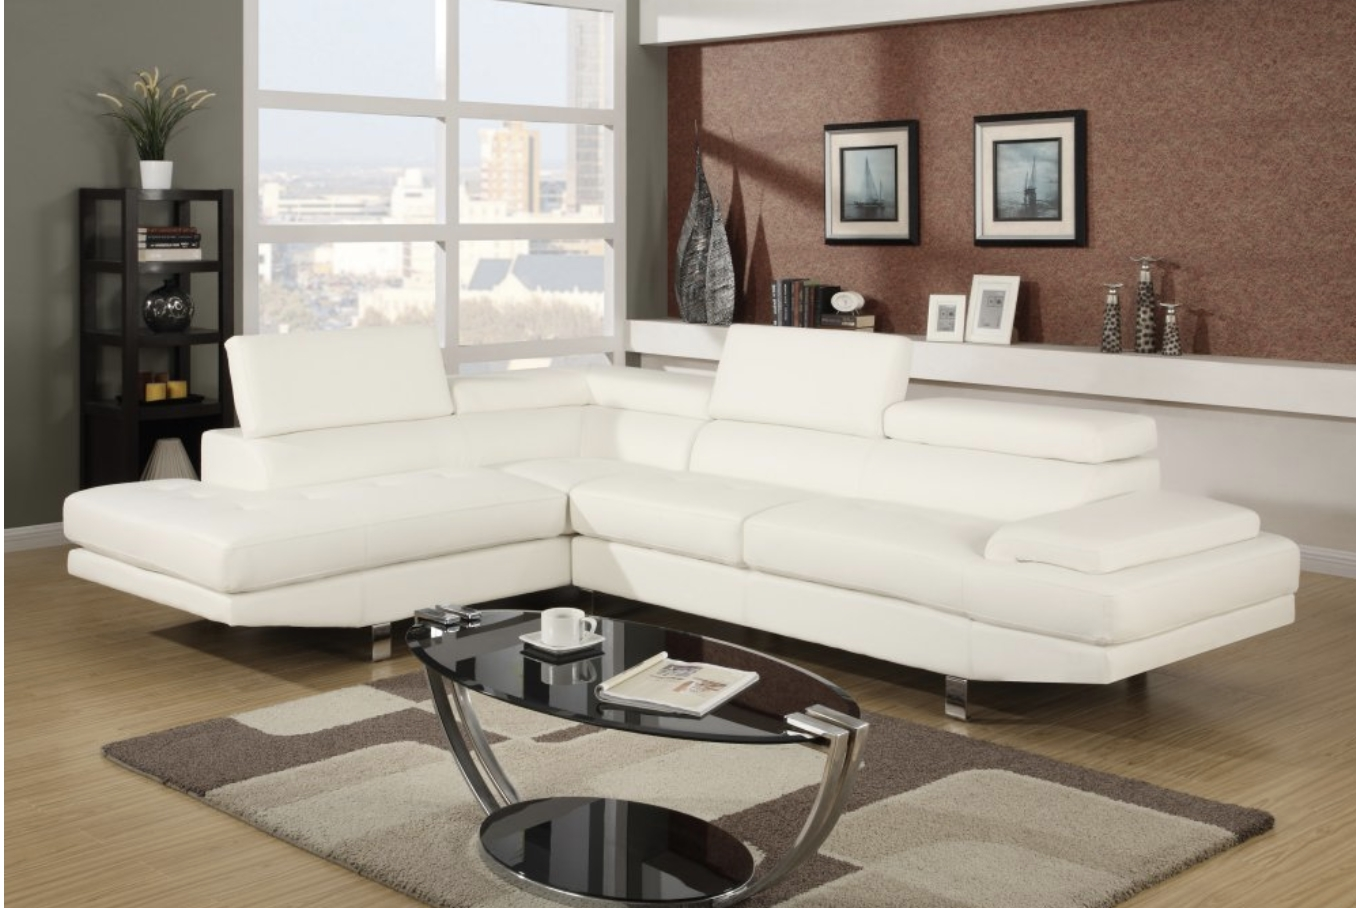 100x80 Sectional Sofas For Most Recent 75 Modern Sectional Sofas For Small Spaces (2018) (View 10 of 20)